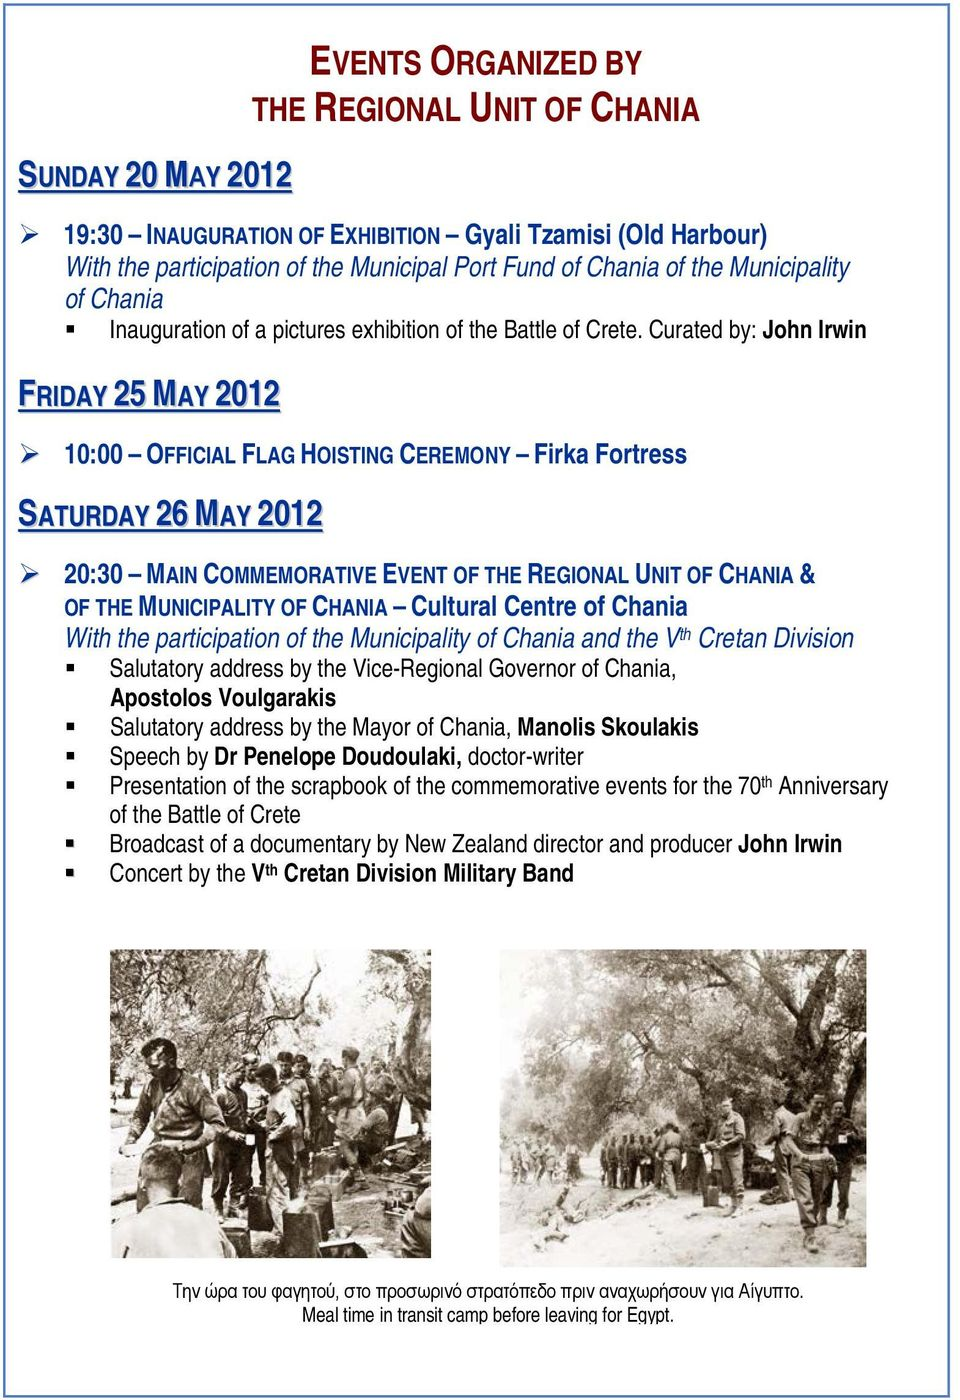 Curated by: John Irwin FRIDAY 25 MAY 2012 10:00 OFFICIAL FLAG HOISTING CEREMONY Firka Fortress SATURDAY 26 MAY 2012 20:30 MAIN COMMEMORATIVE EVENT OF THE REGIONAL UNIT OF CHANIA & OF THE MUNICIPALITY